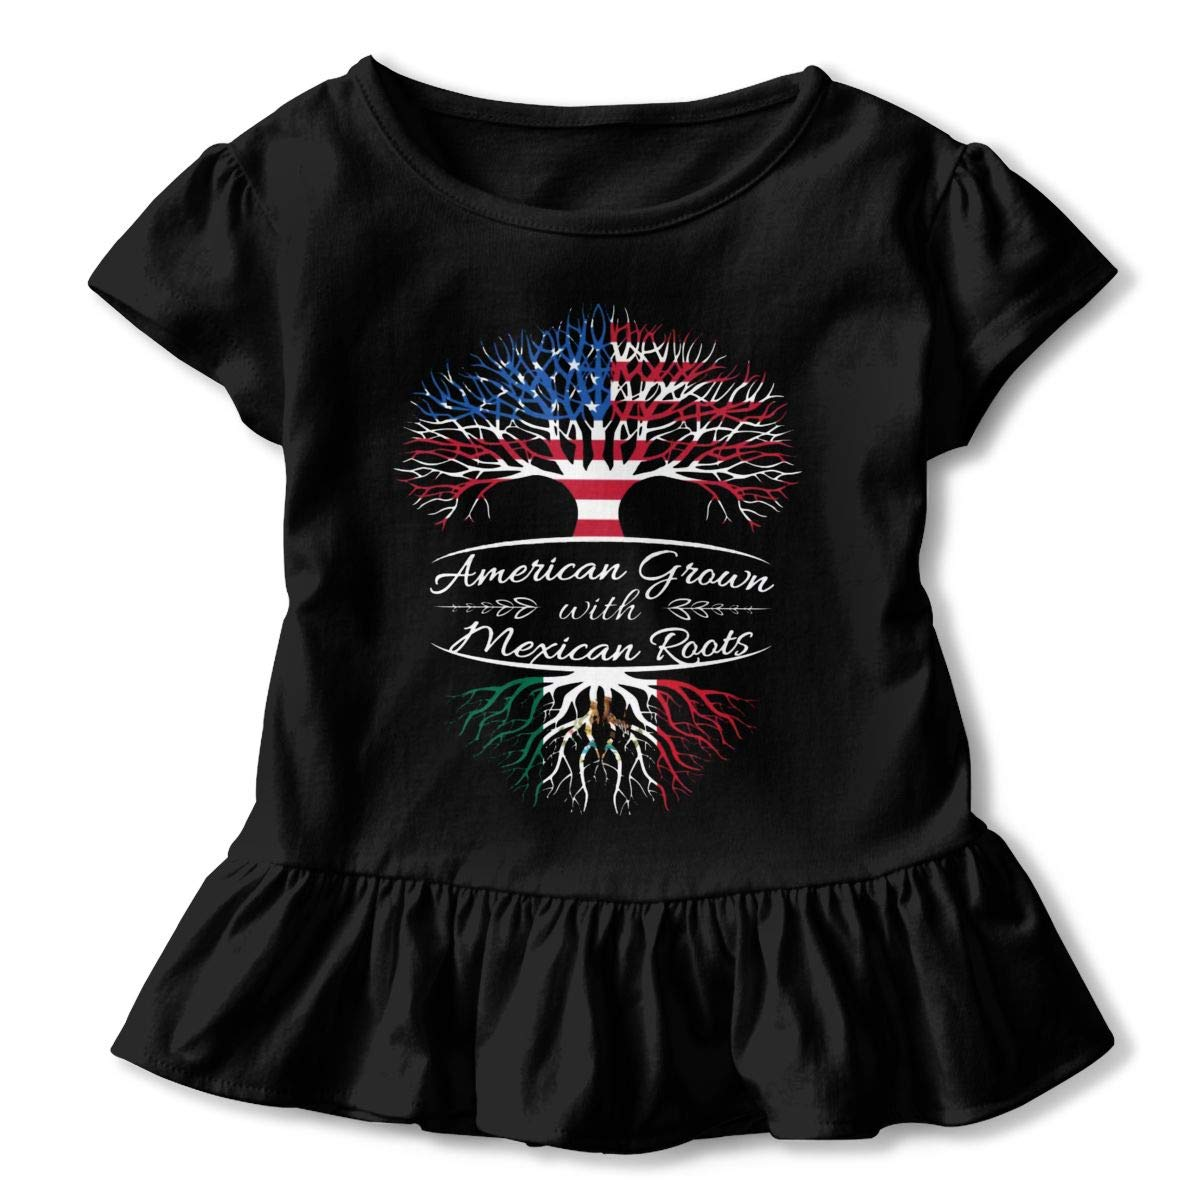 American Grown Mexican Roots2 Baby Girls Short Sleeve Ruffles T-Shirt Tops 2-Pack Cotton Tee